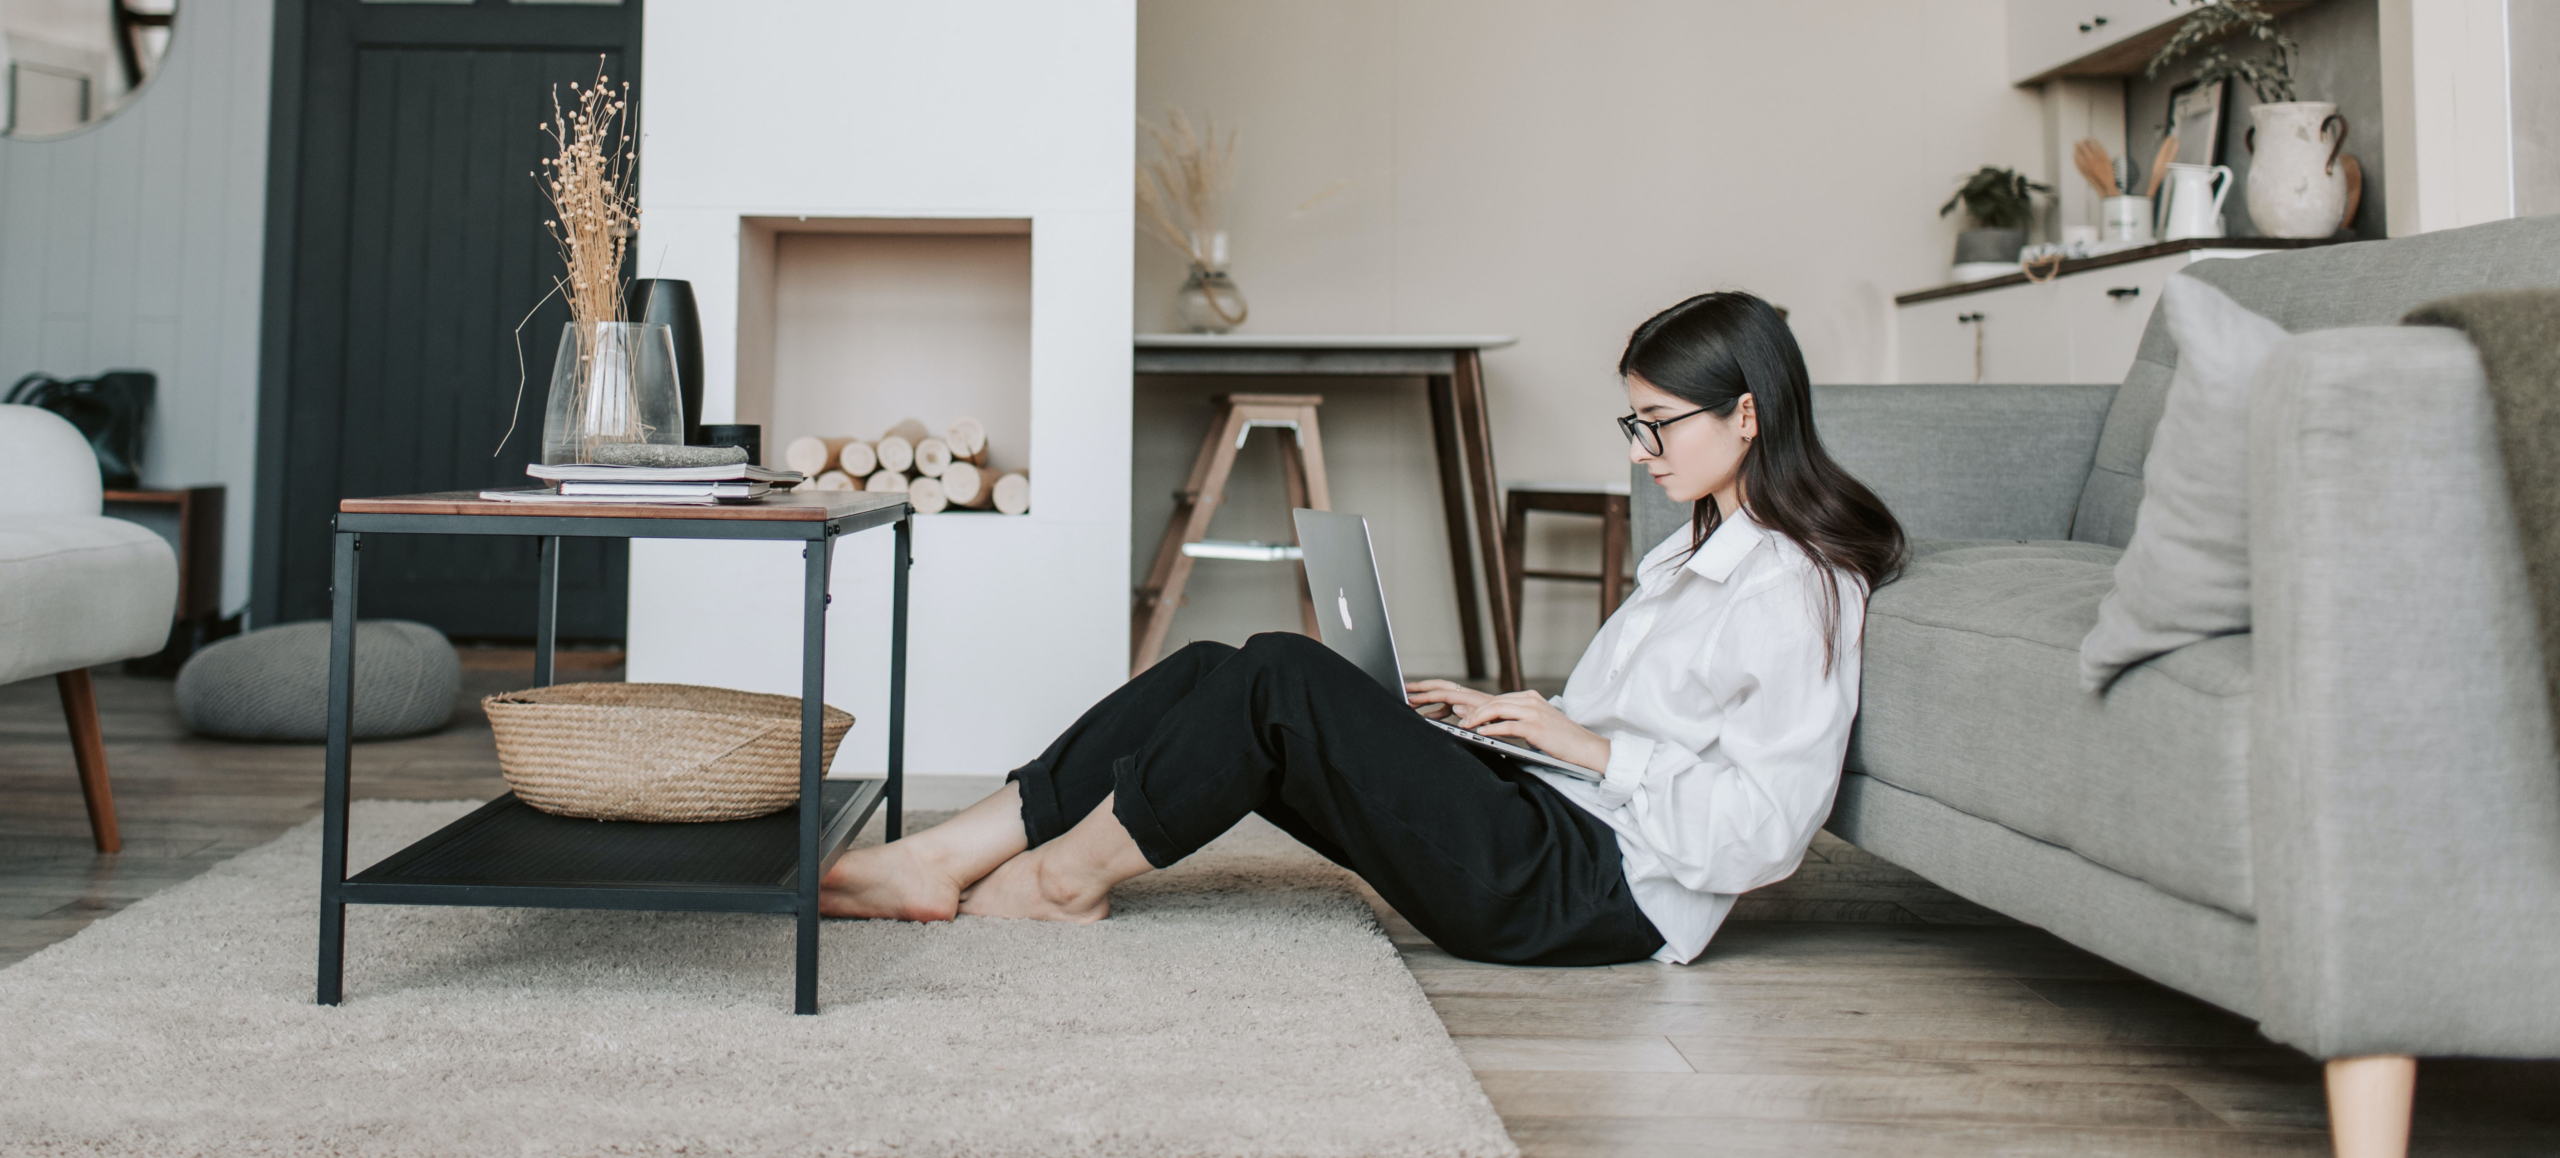 lounge wear with shirt as work from home COVID fashion